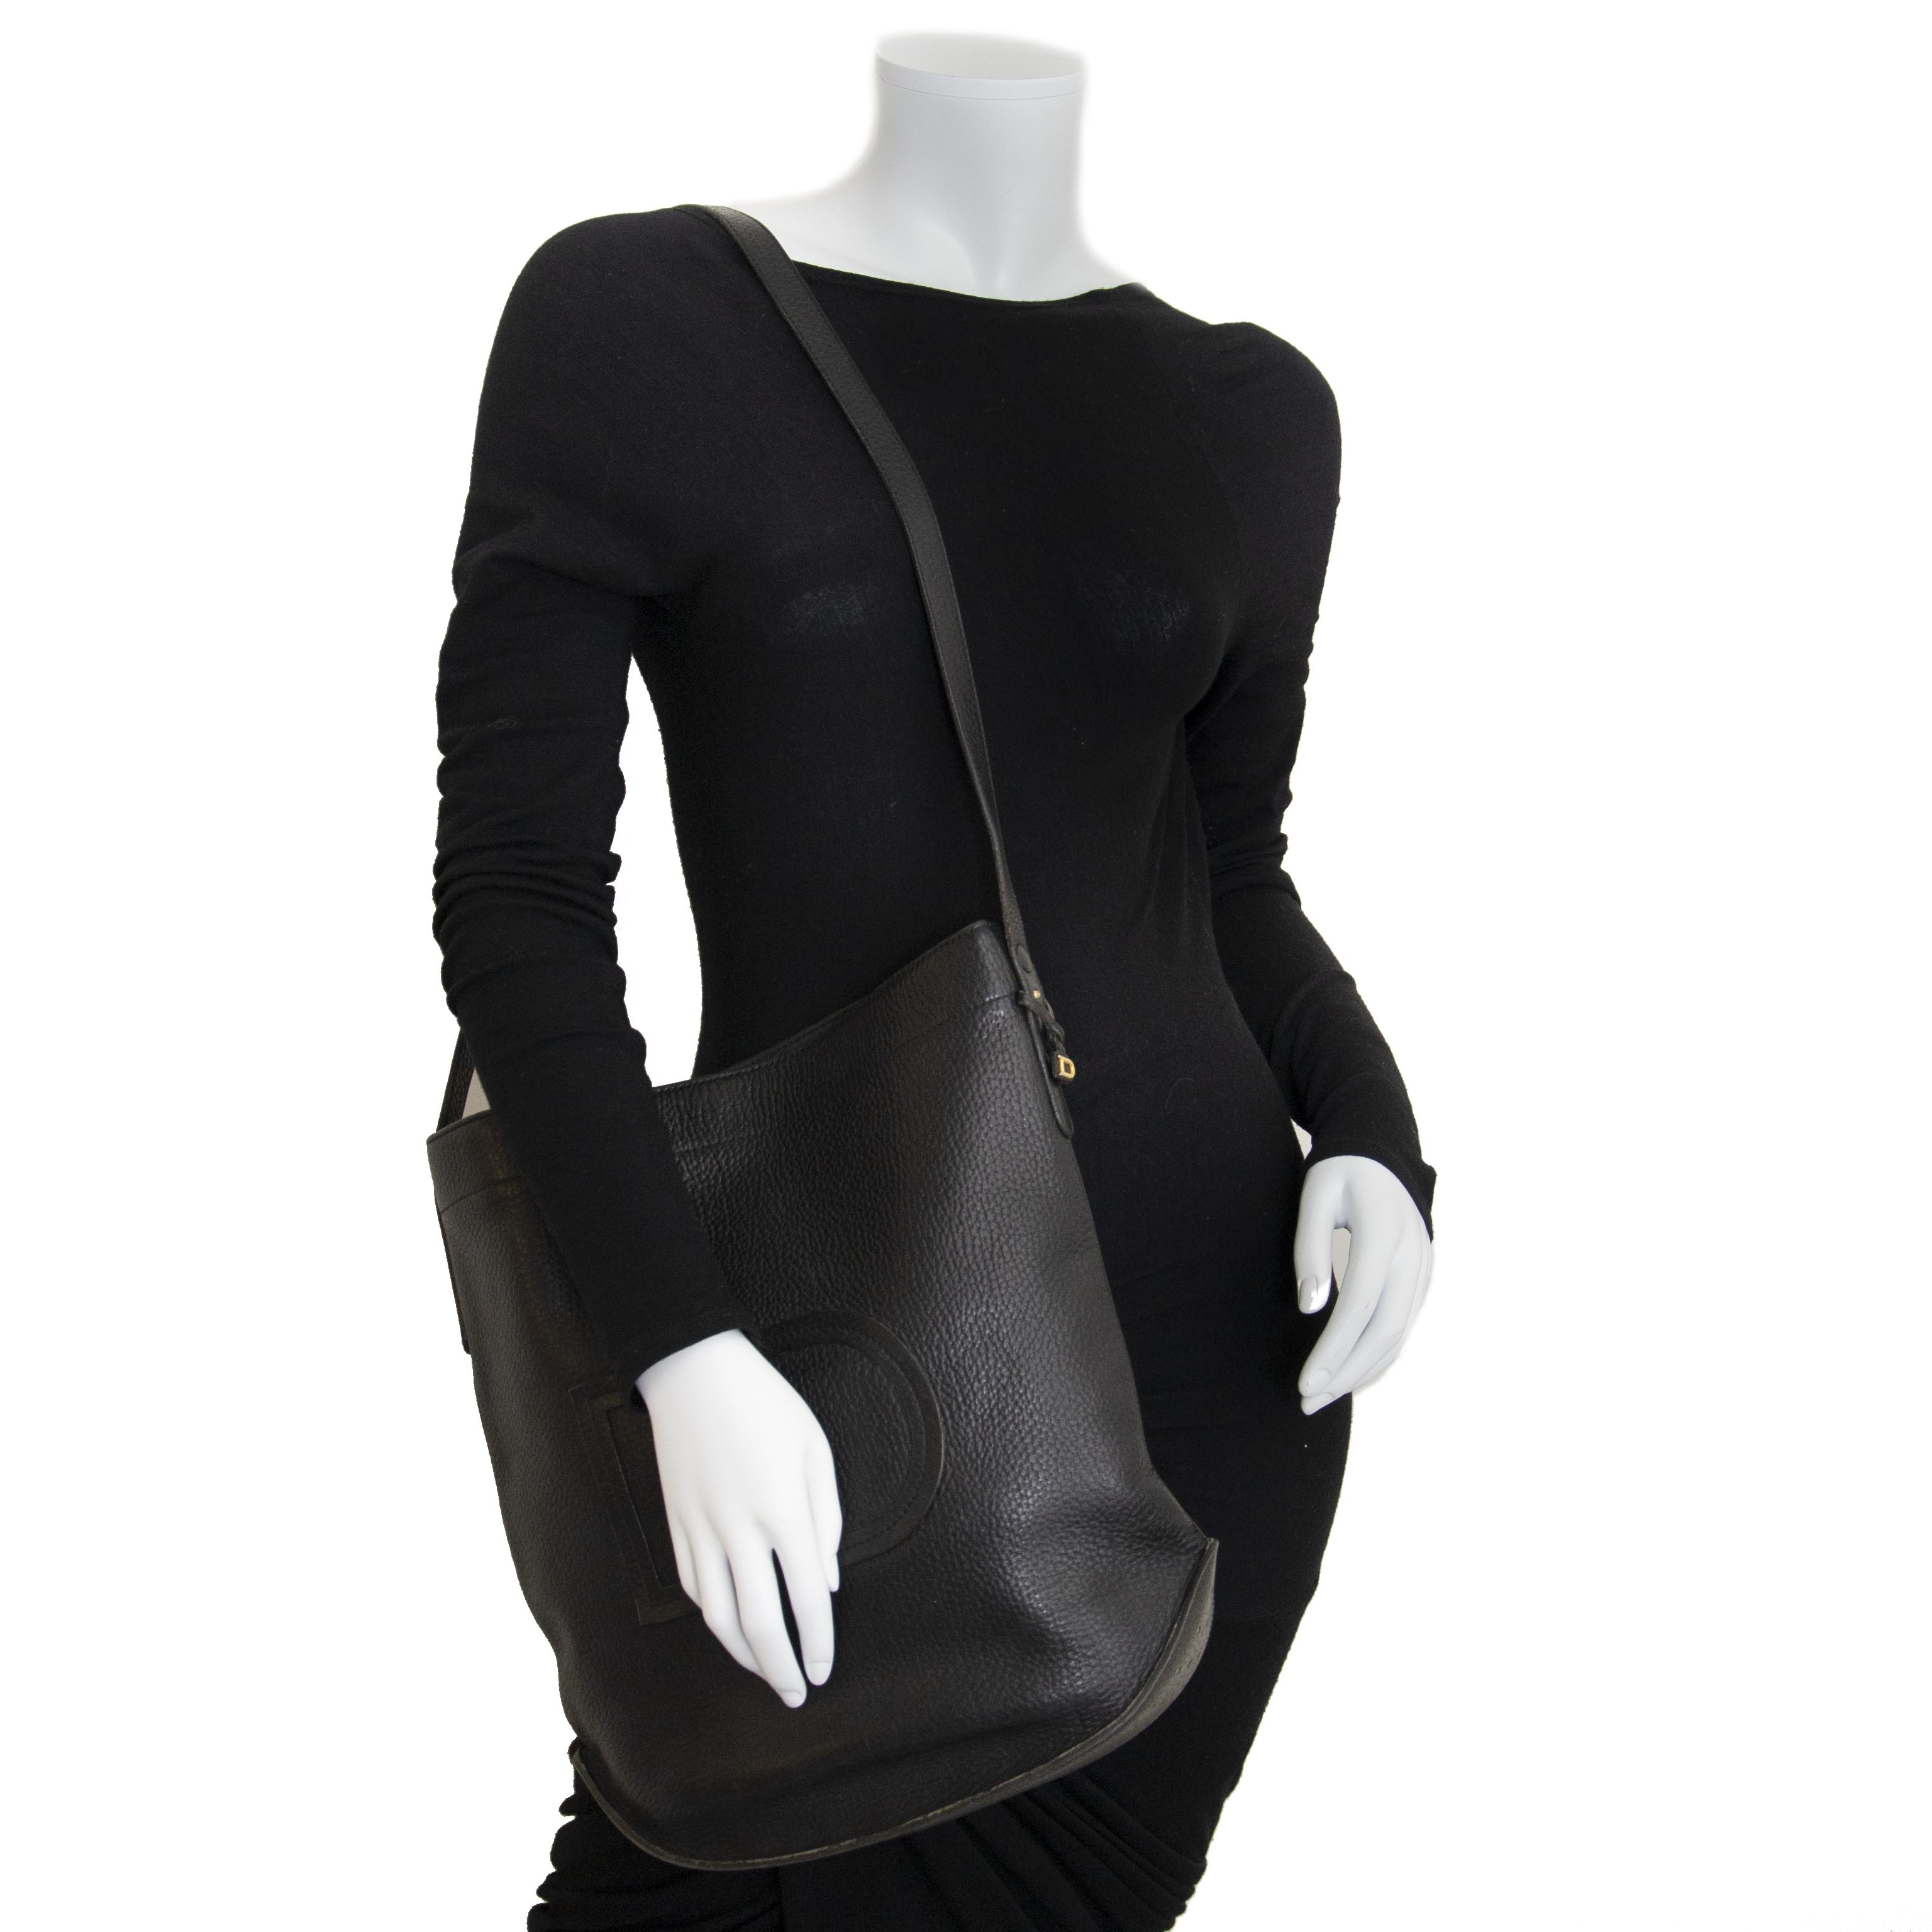 aa9ab92c97d2 Labellov Shoulder - Bags ○ Buy and Sell Authentic Luxury